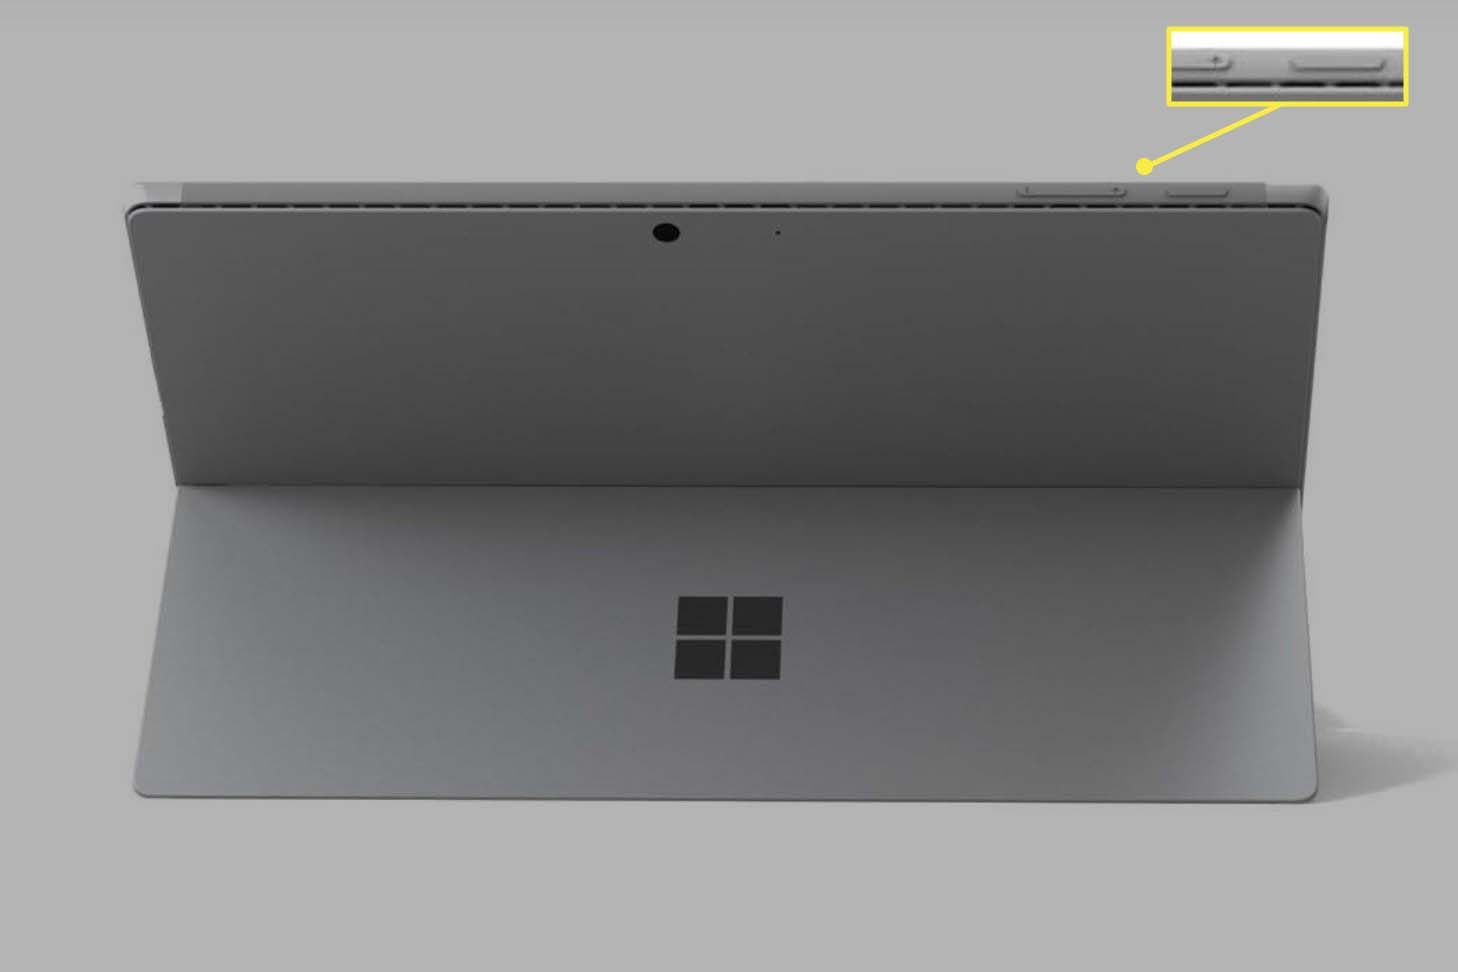 A Microsoft Surface Pro shown from the rear with Power and Volume Up buttons visible.